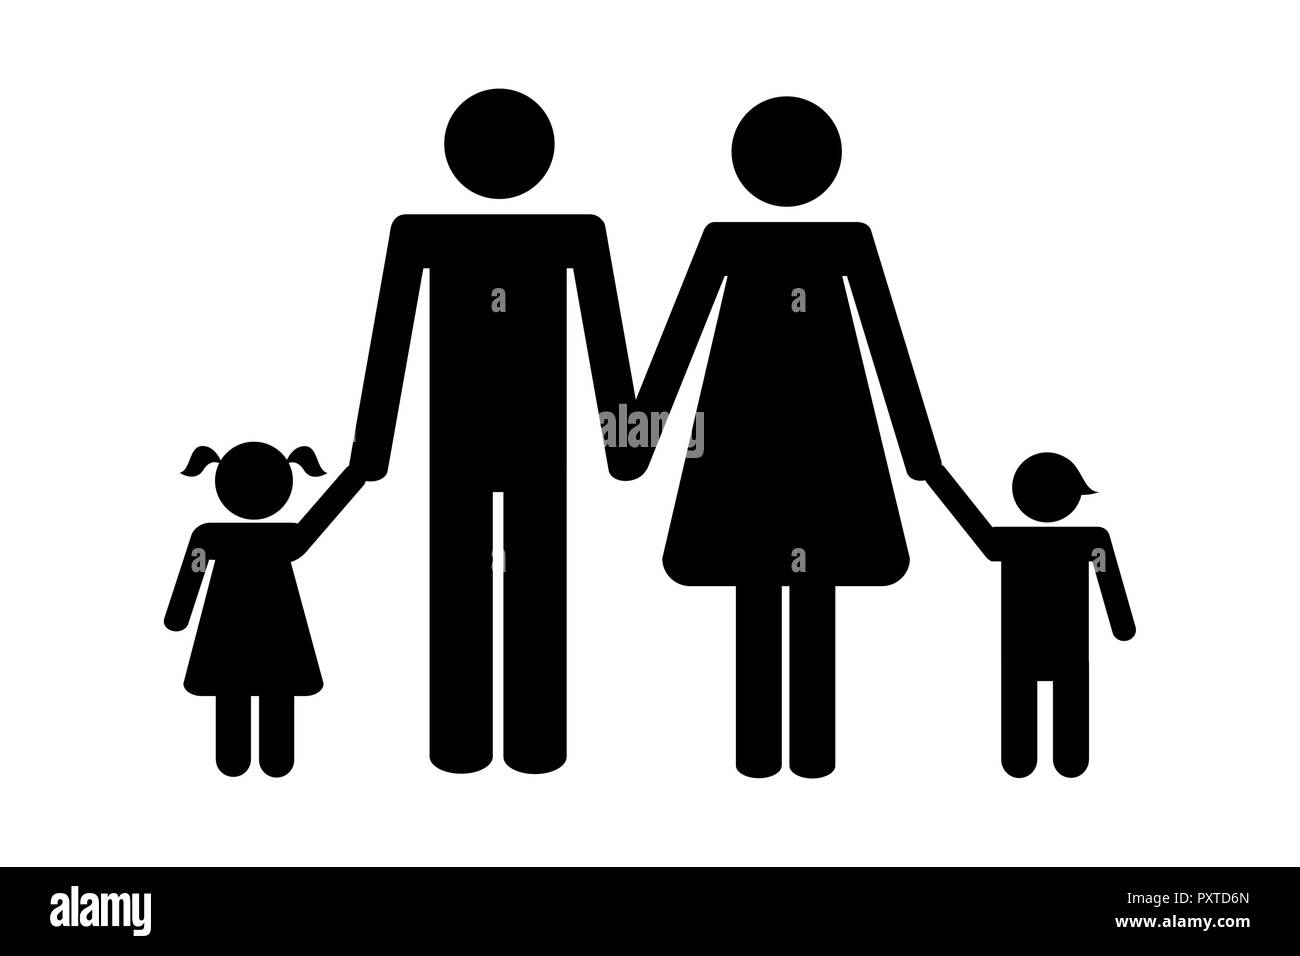 family with two children pictogram vector illustration EPS10 - Stock Image